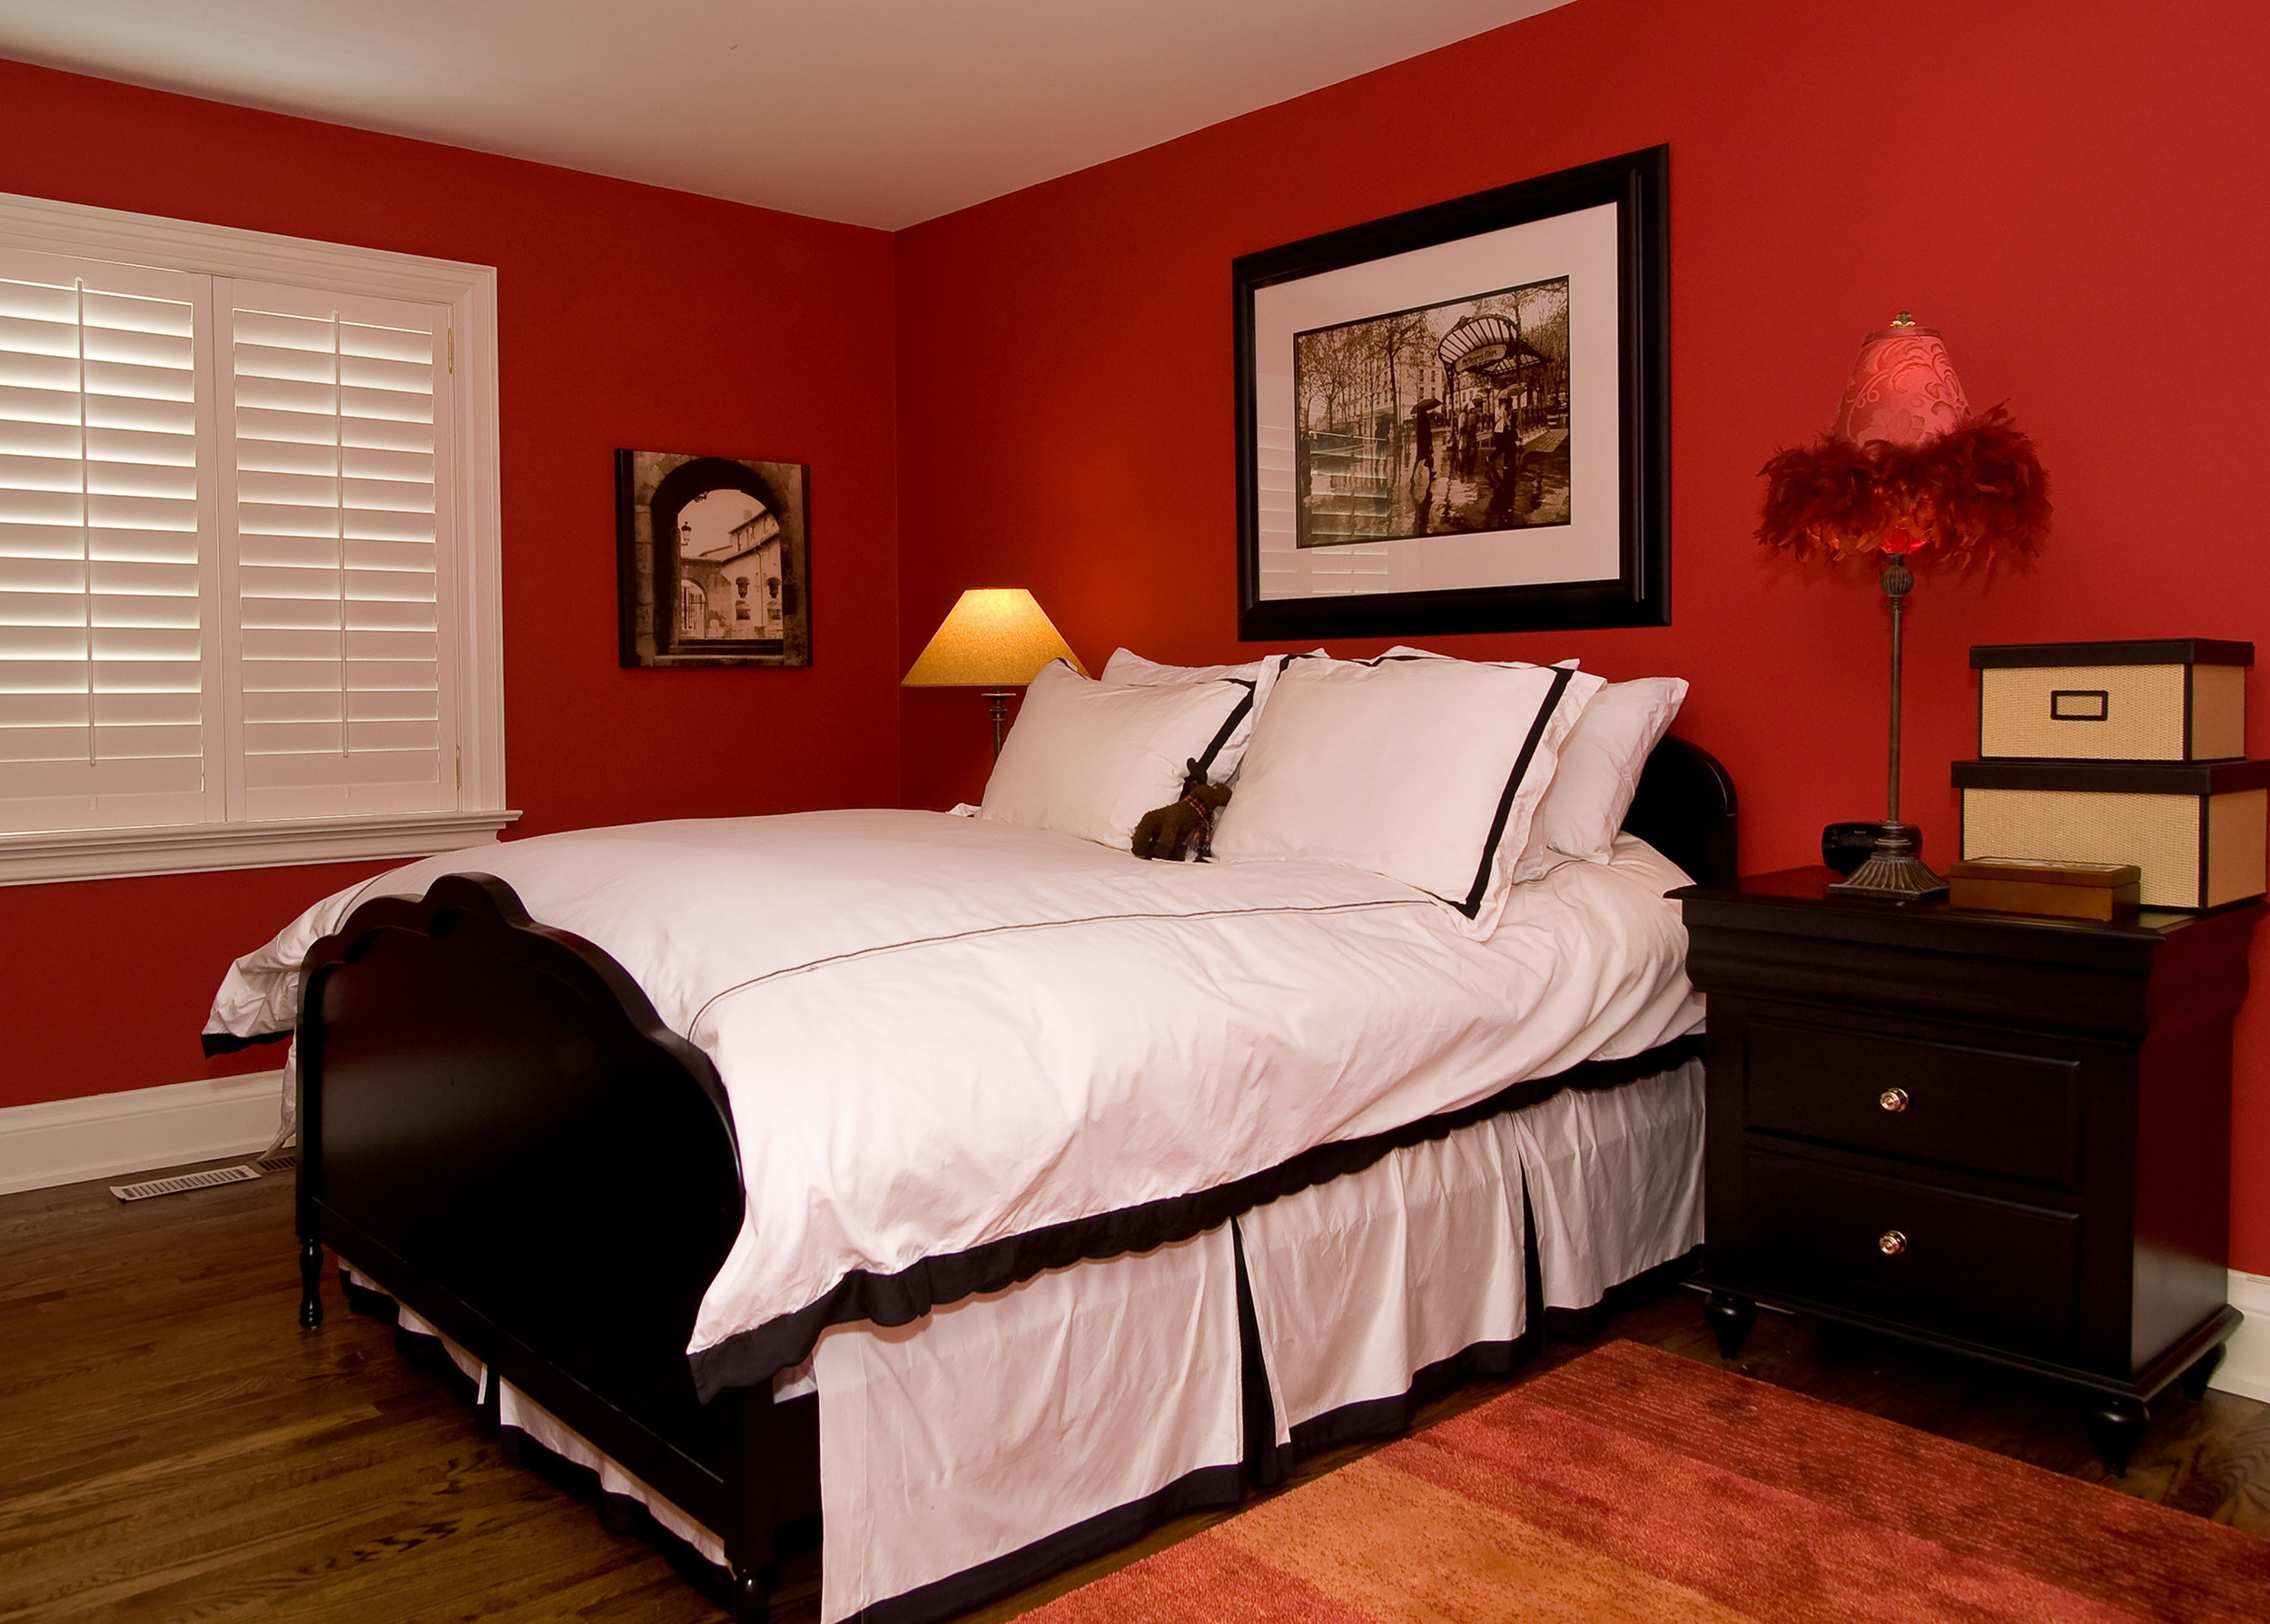 _1100210 red bed print web.jpg